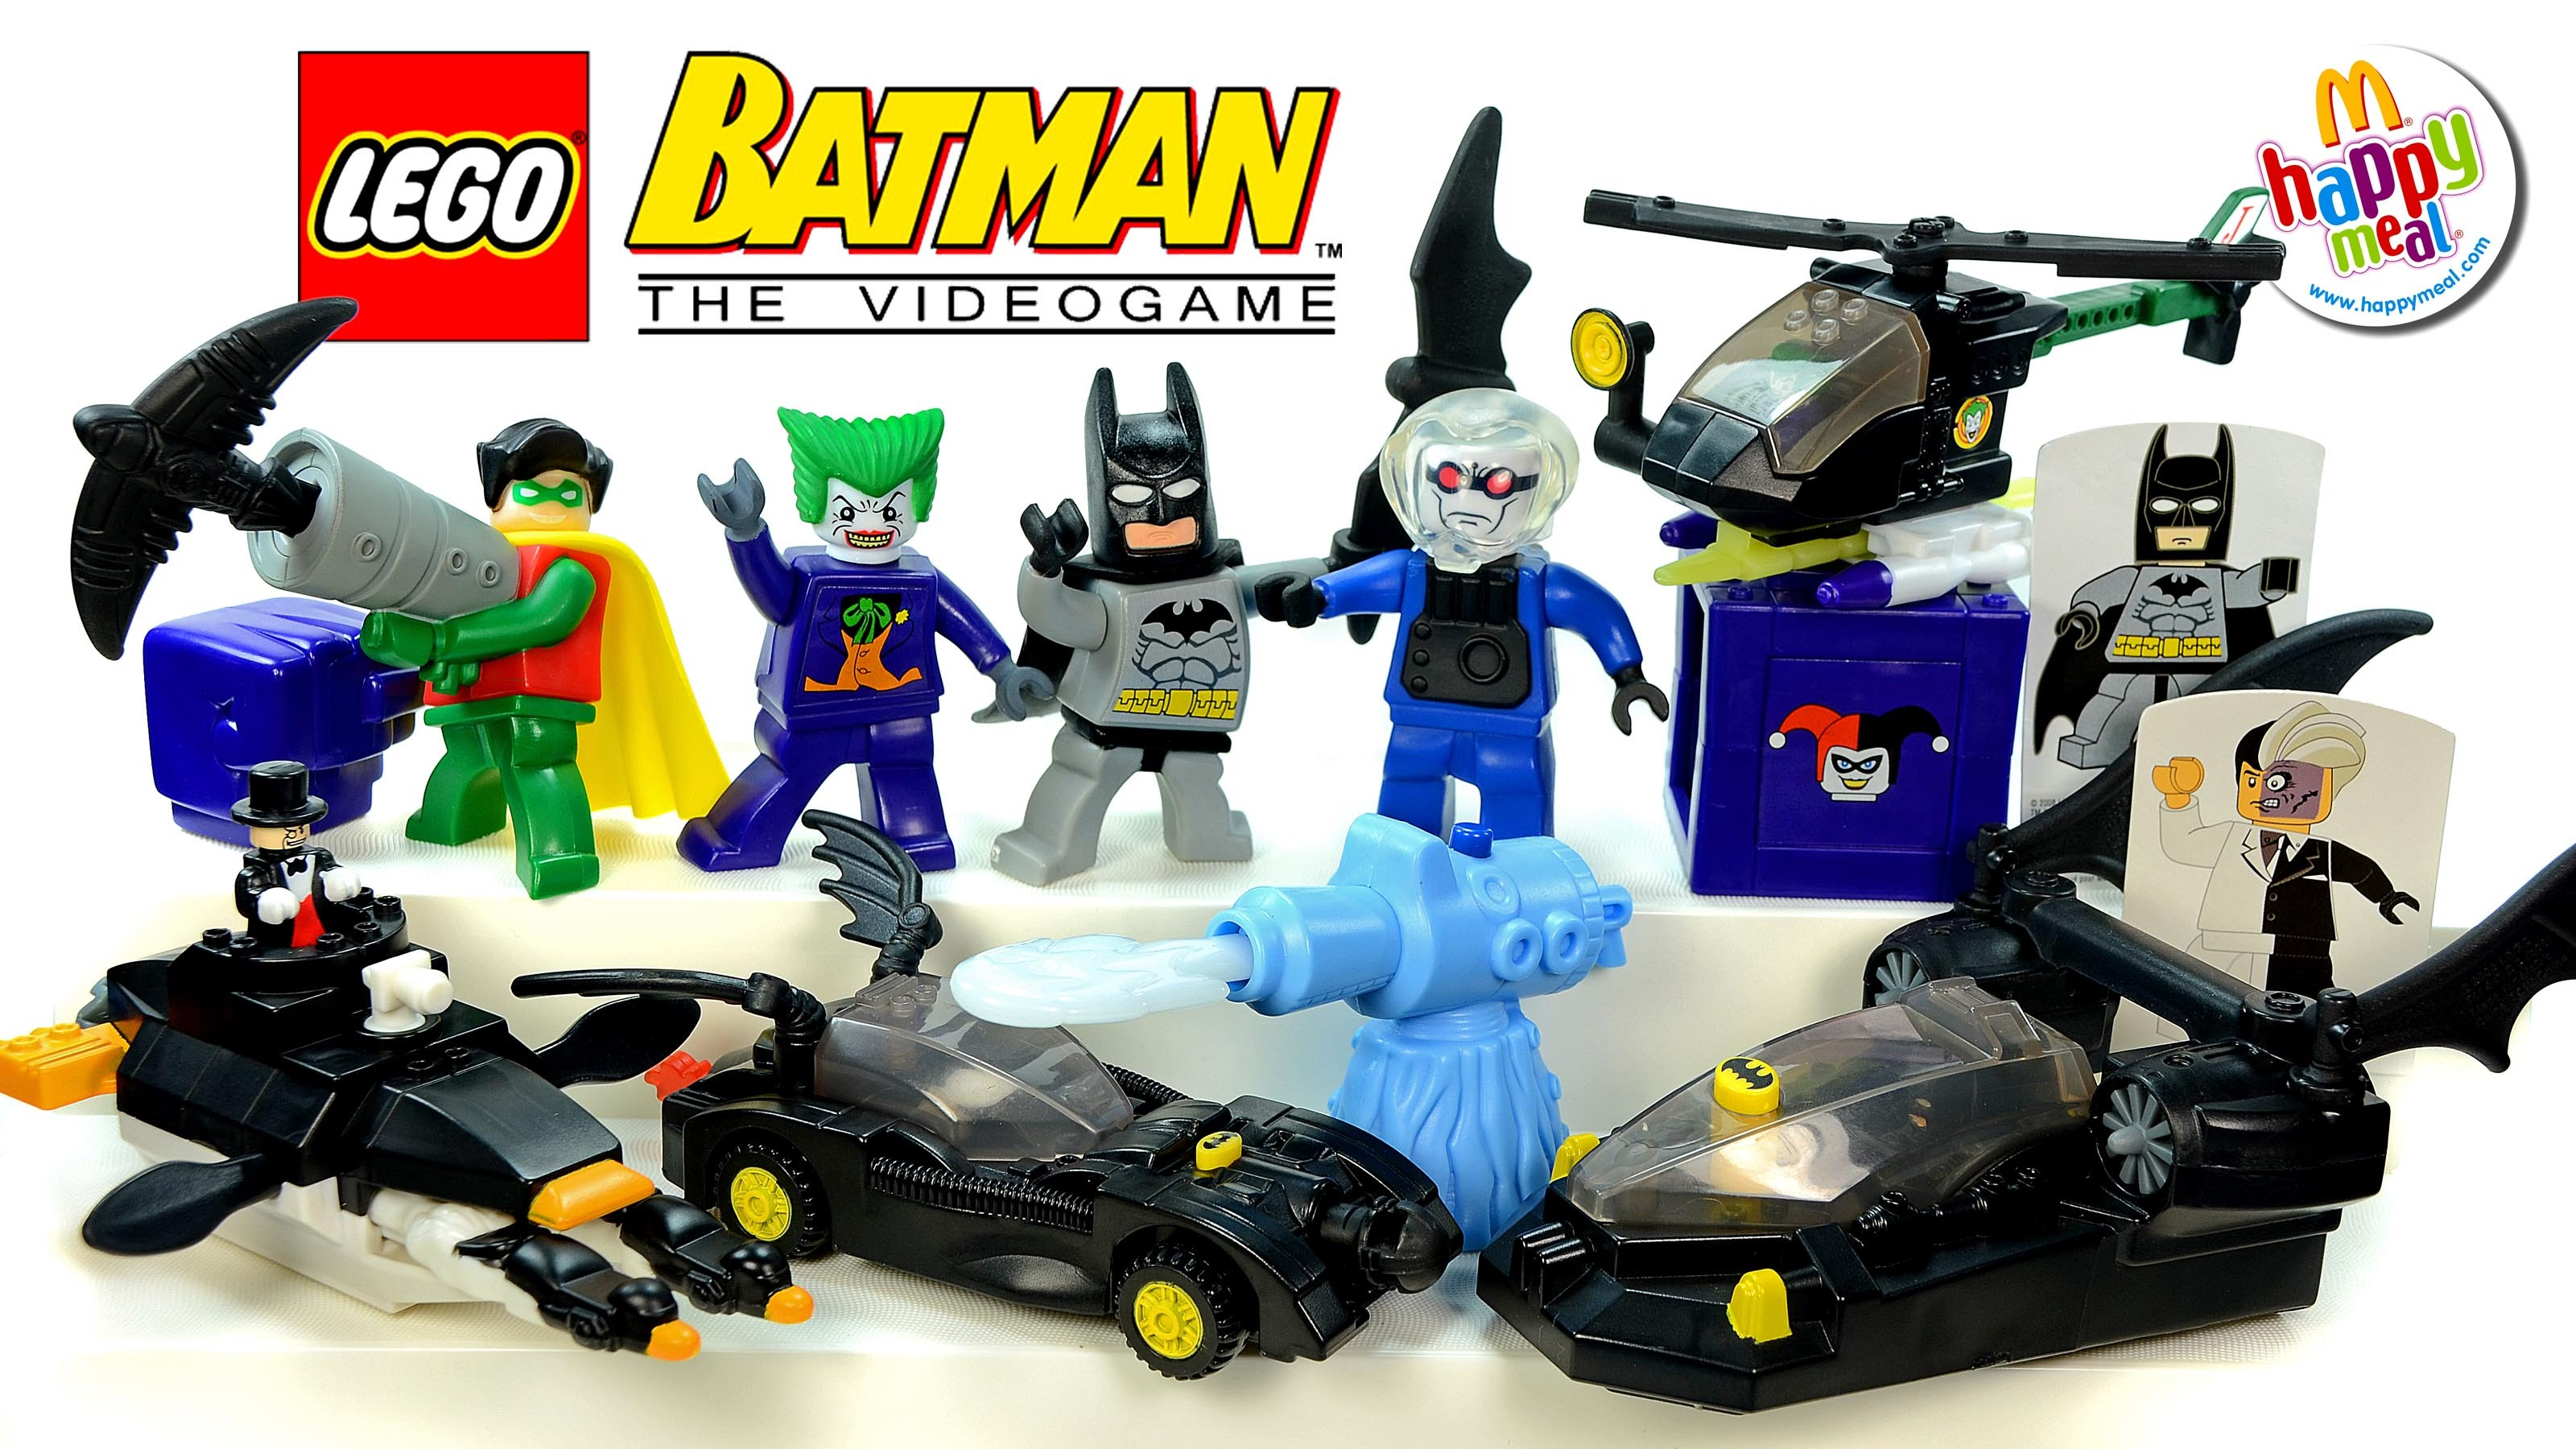 Lego Batman Toys : A christmas time fun look at toys based on comic book